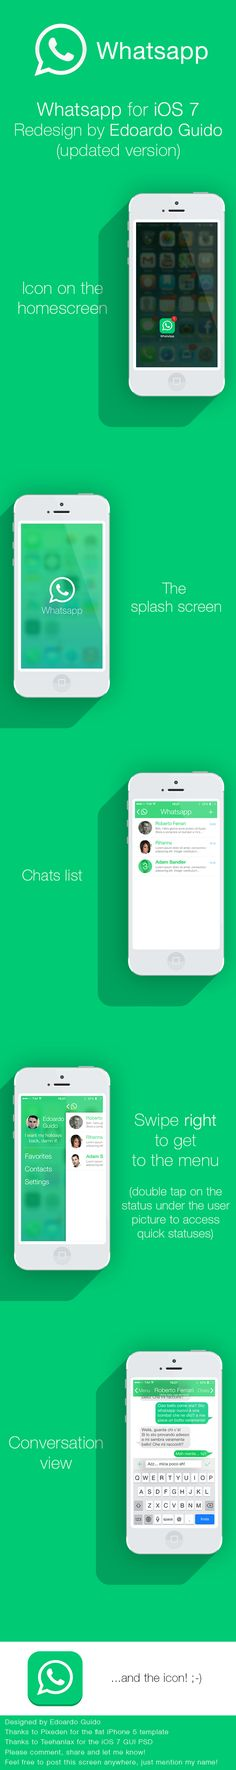 Whatsapp for iOS 7 [